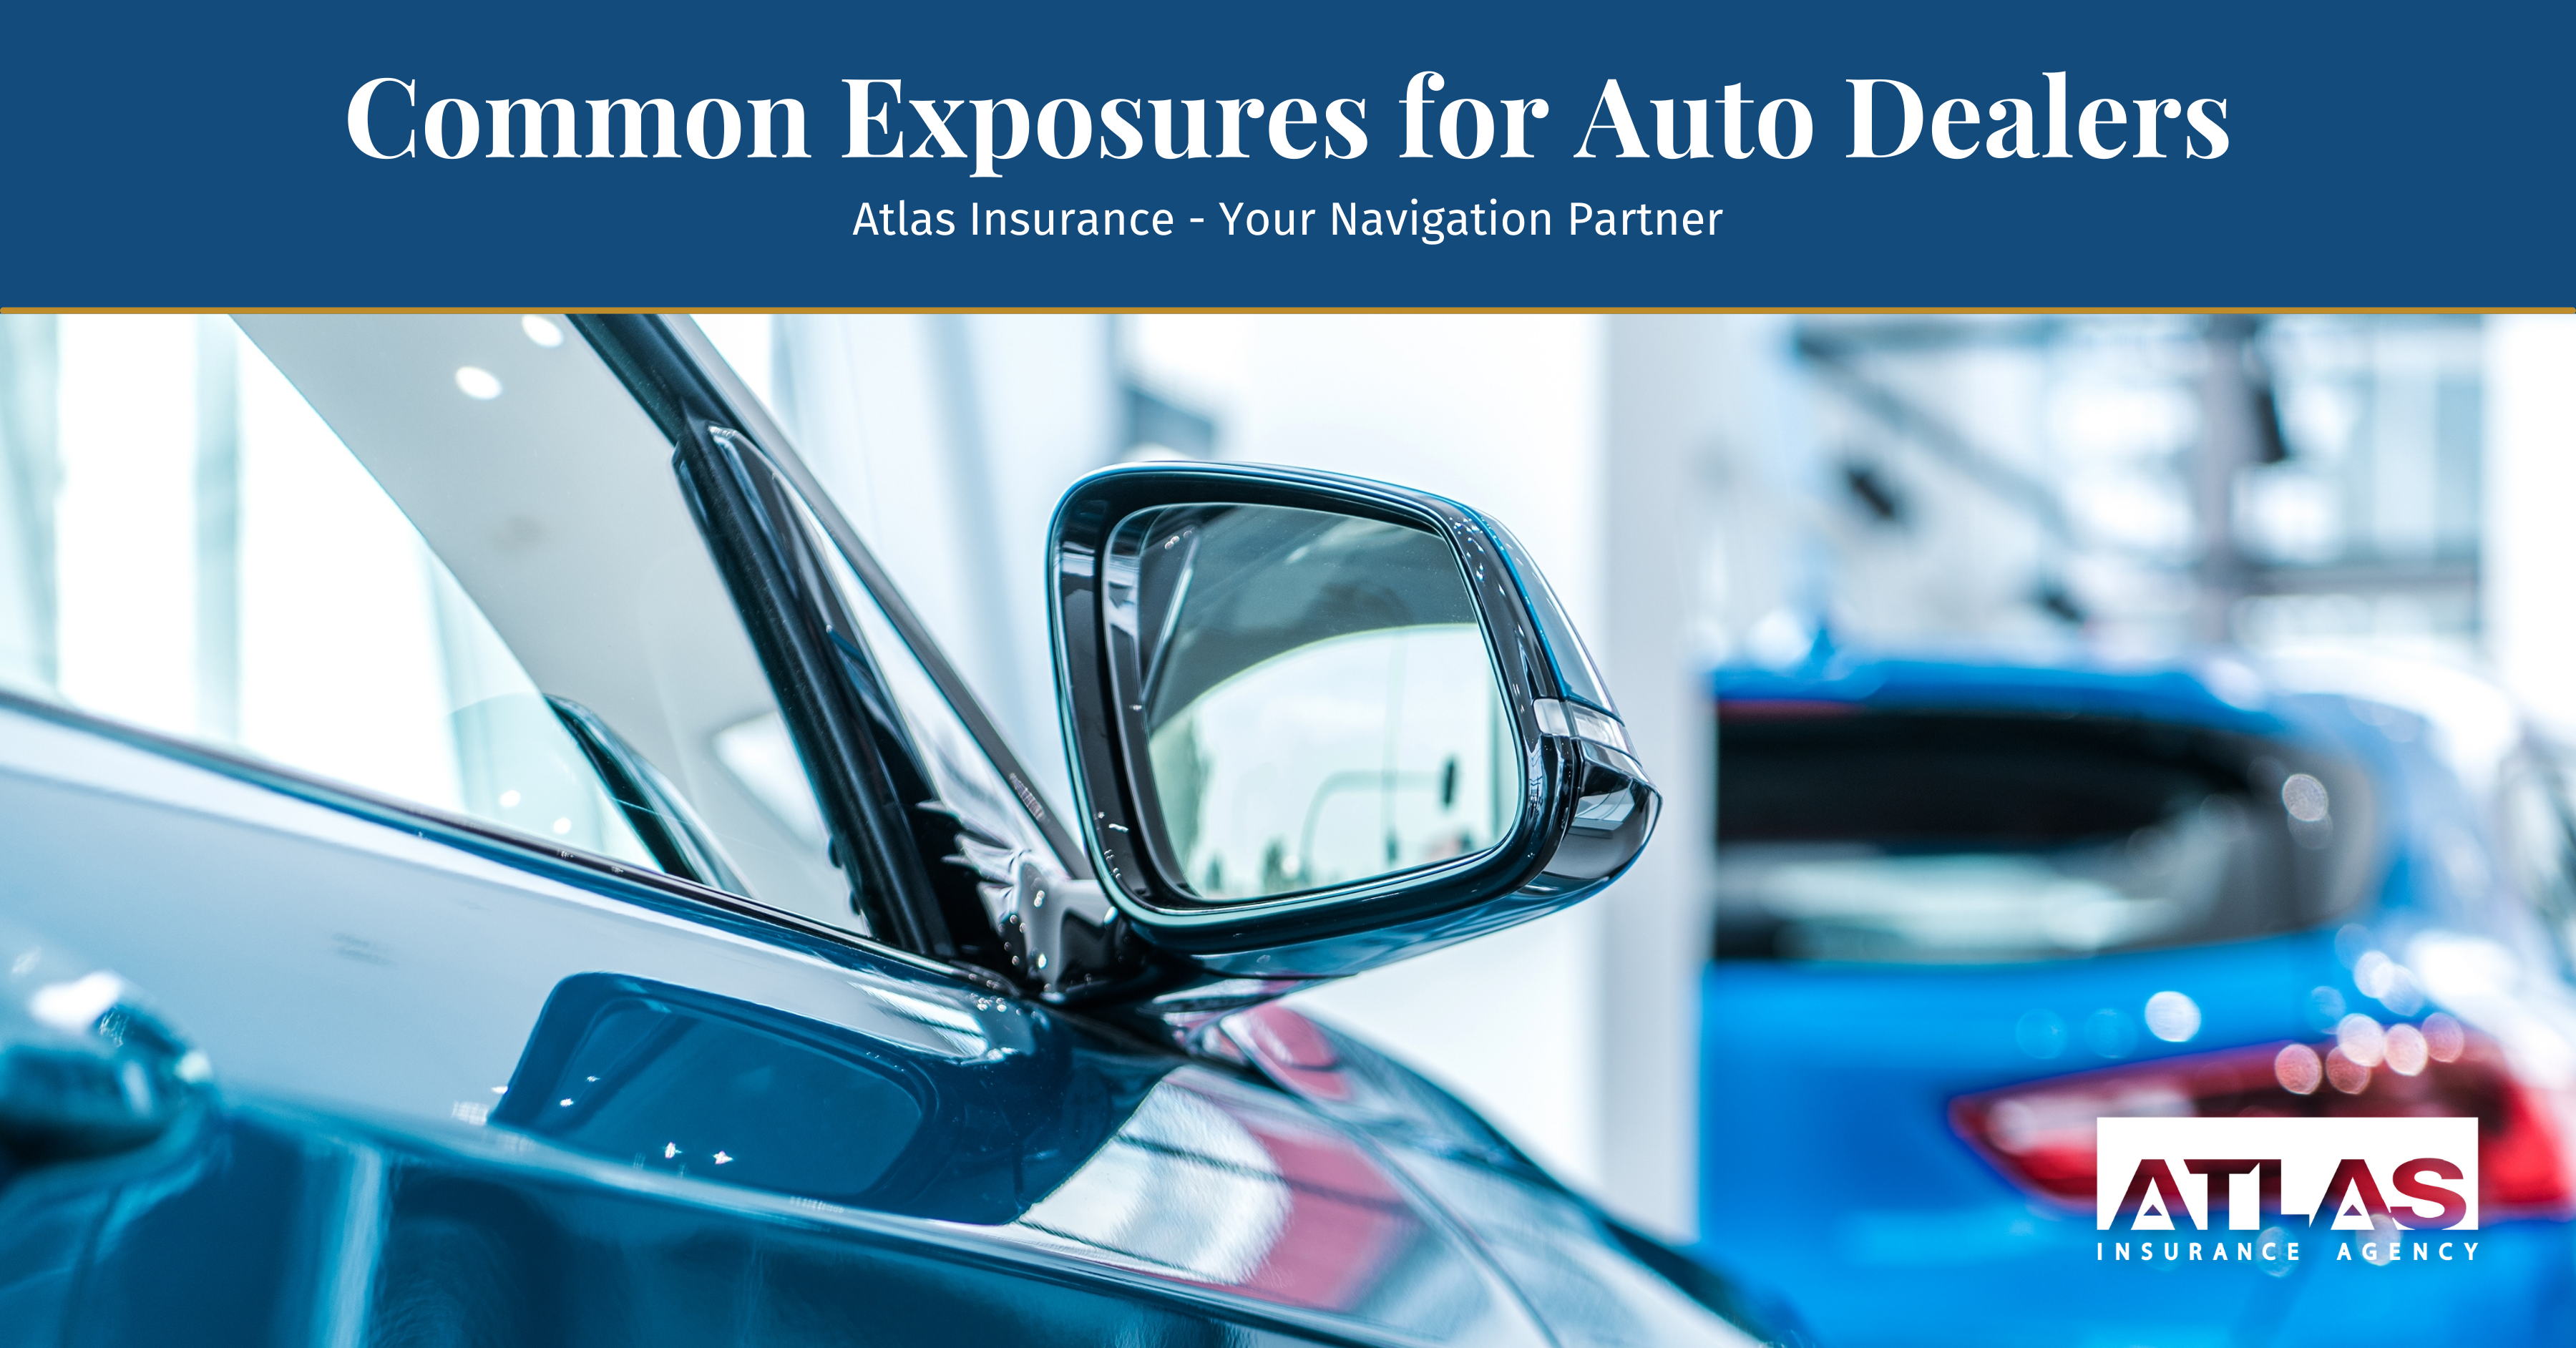 Common Exposures for Auto Dealers